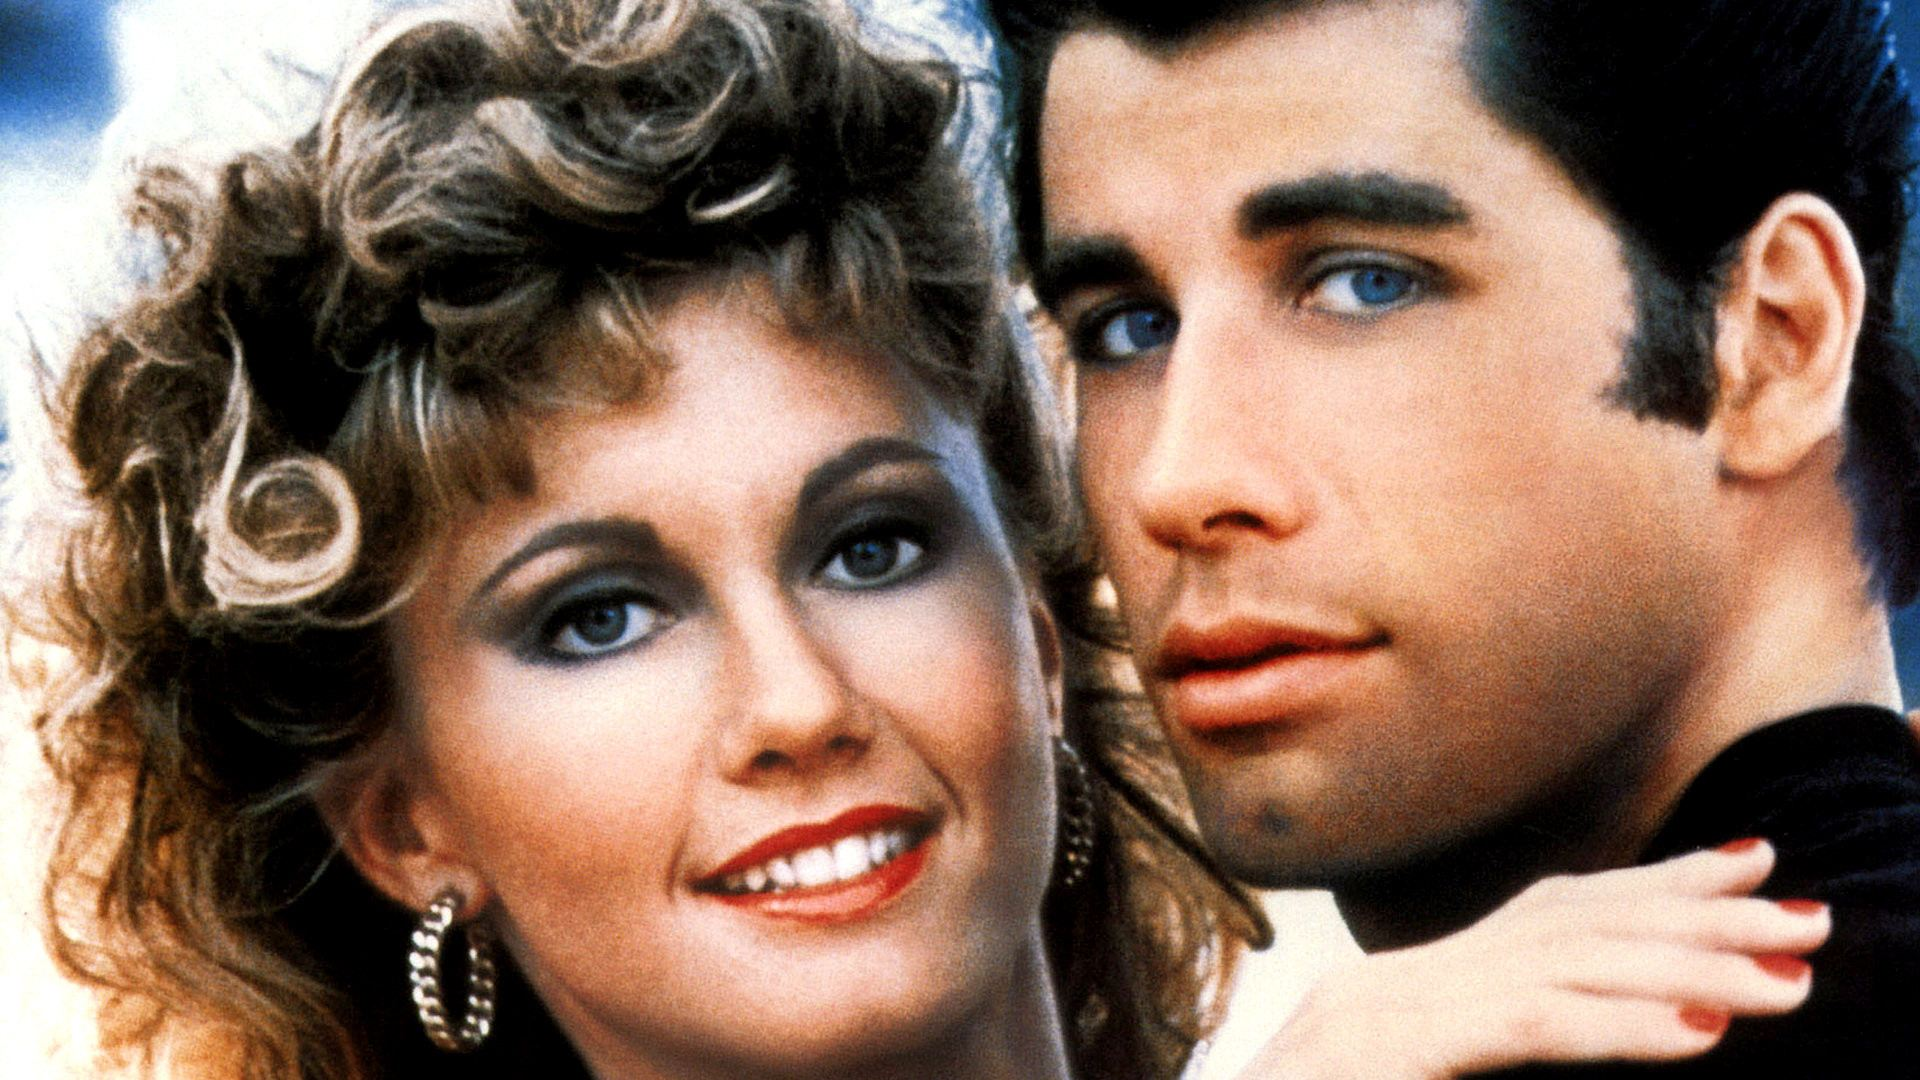 Hd wallpaper anime couple - Grease The Movie Wallpaper Images Amp Pictures Becuo